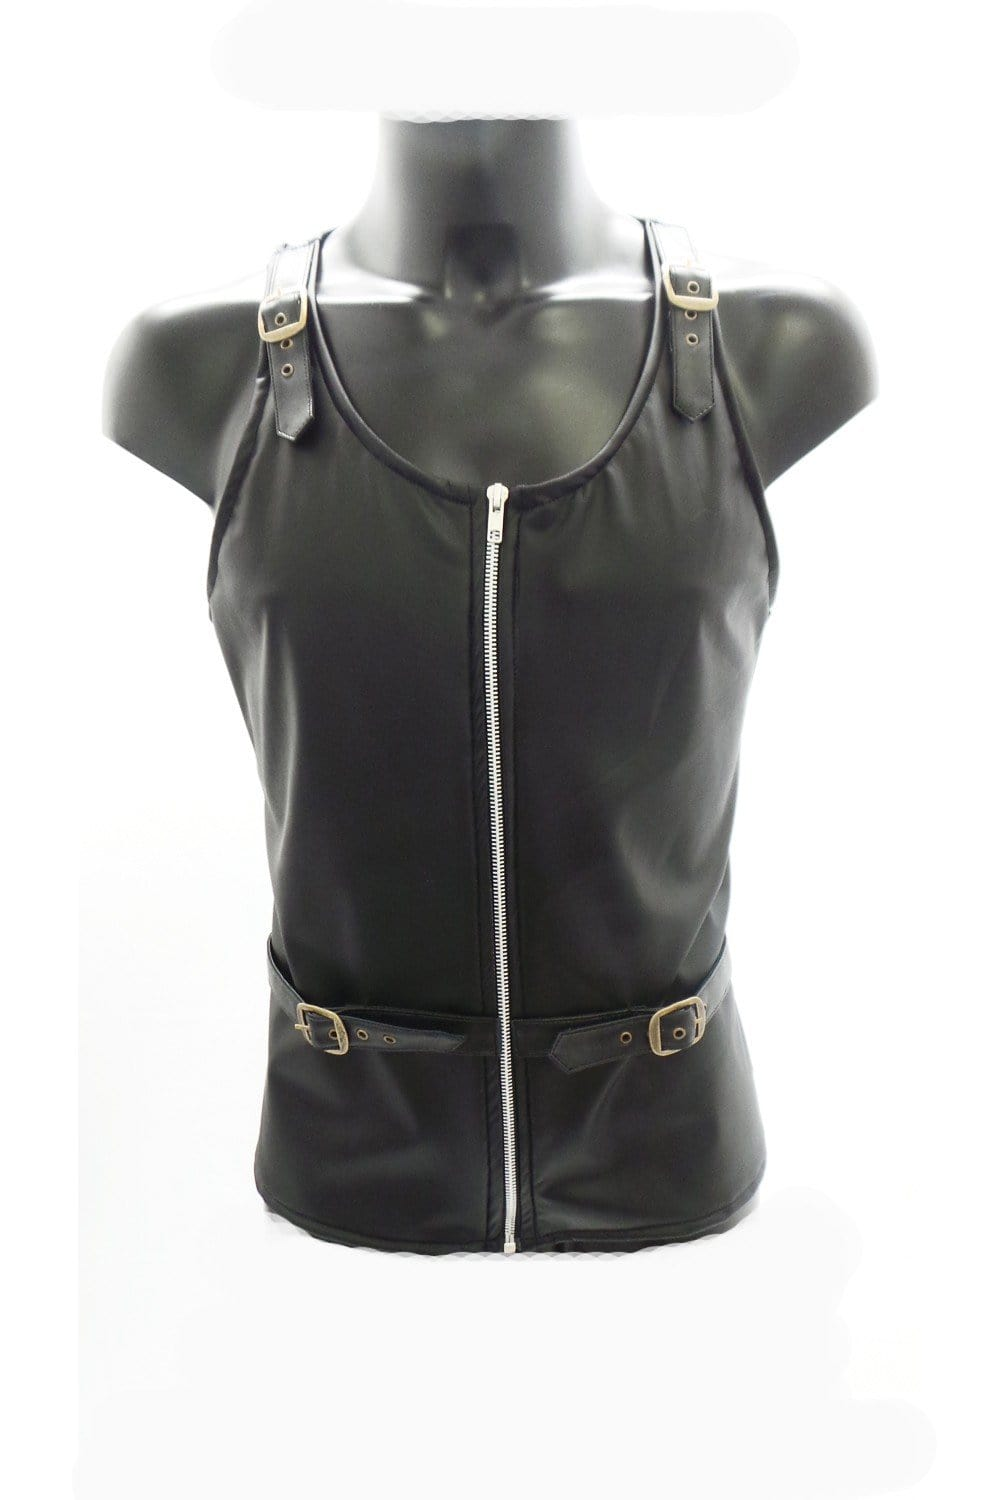 Ben Leatherlook Zip and Strap Vest Top